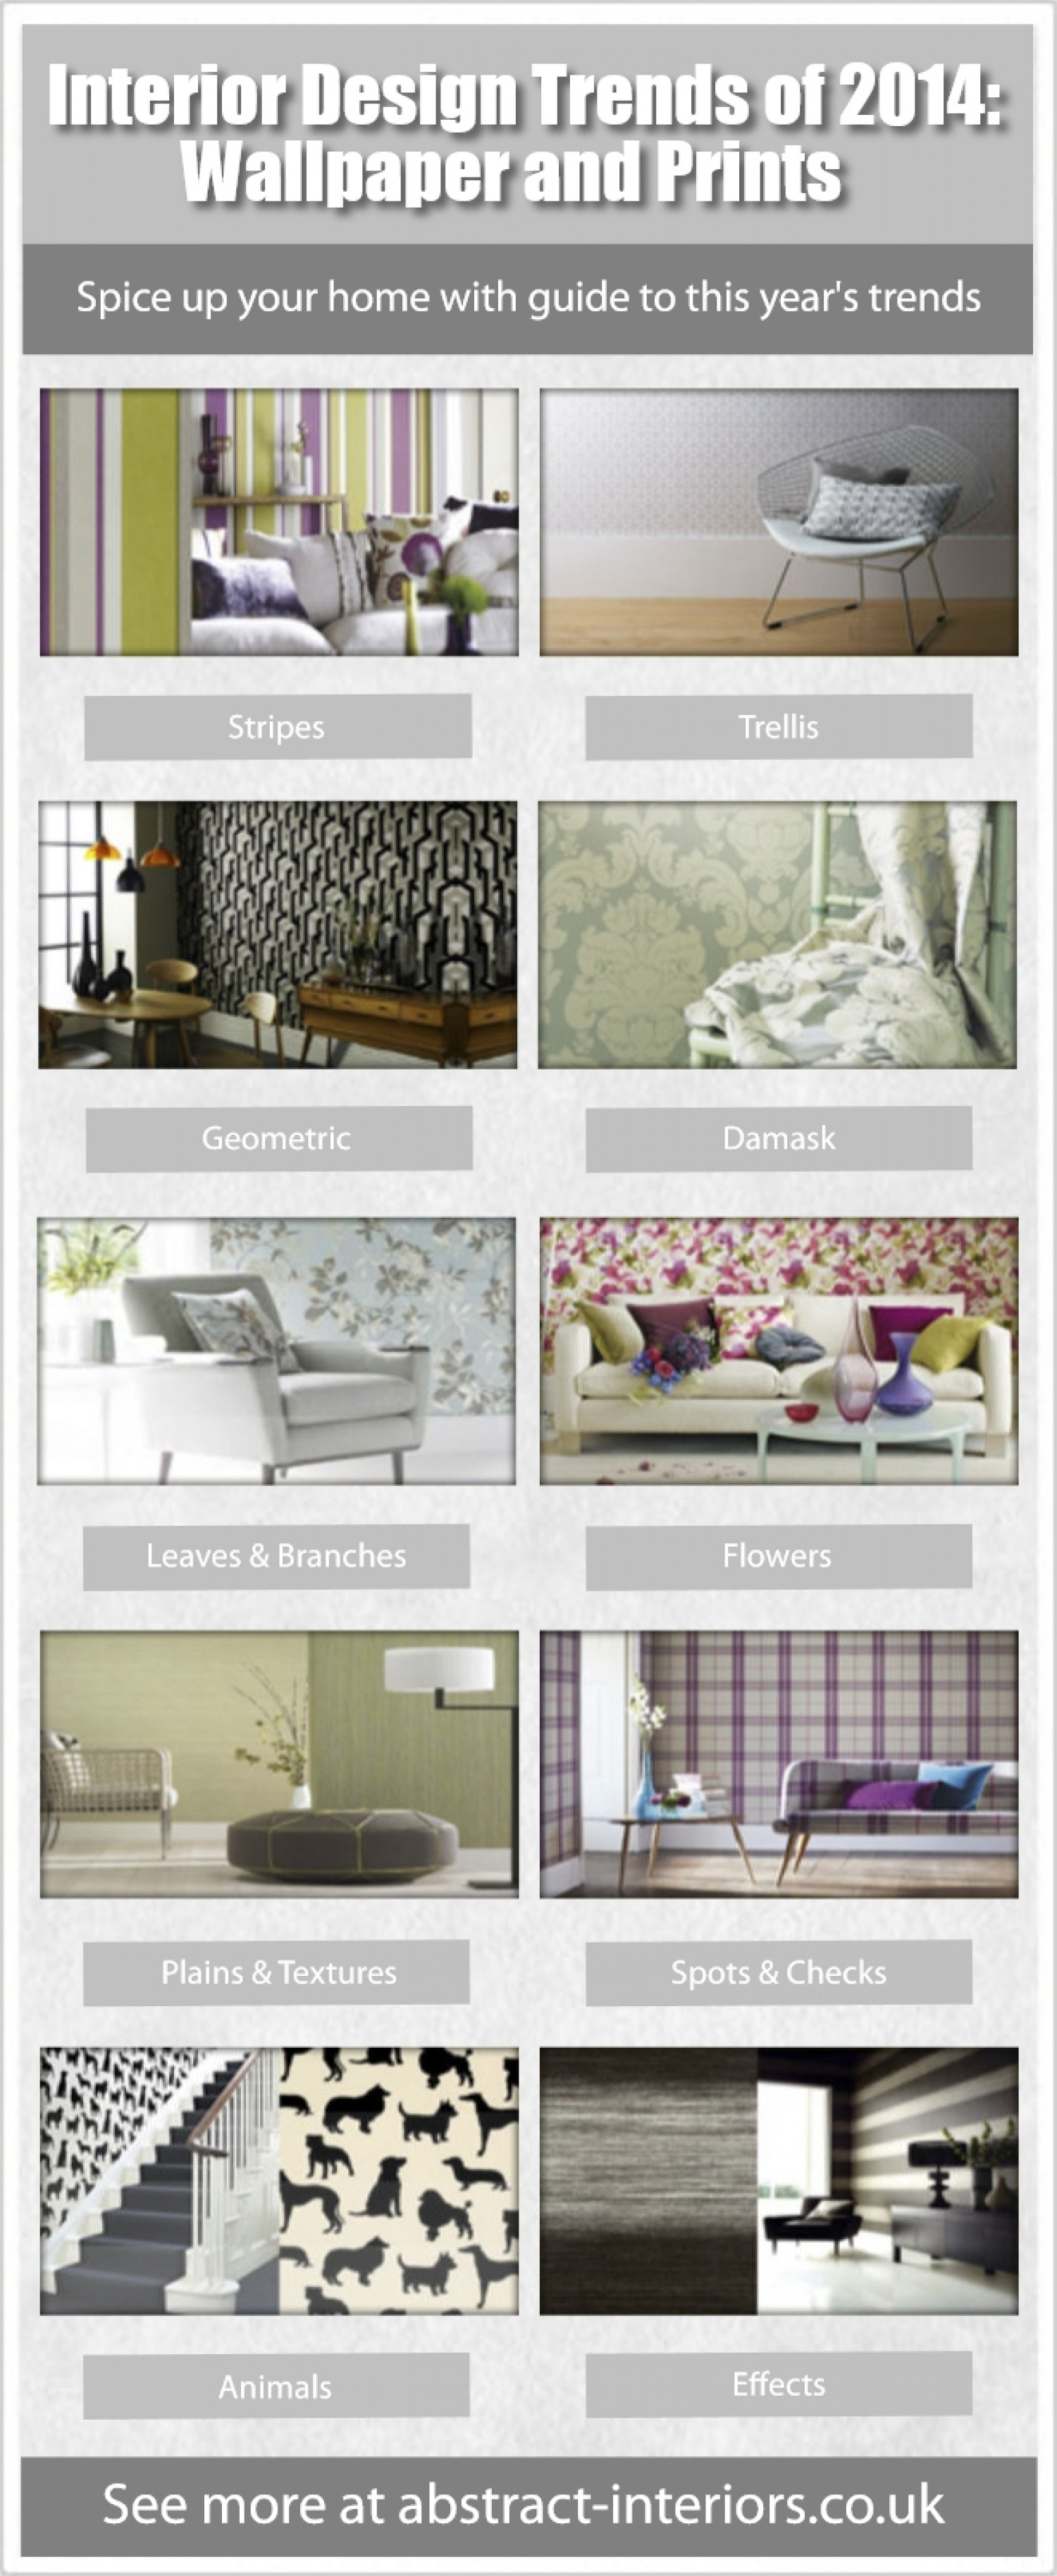 Interior Design Trends of 2014: Wallpaper and Prints Infographic